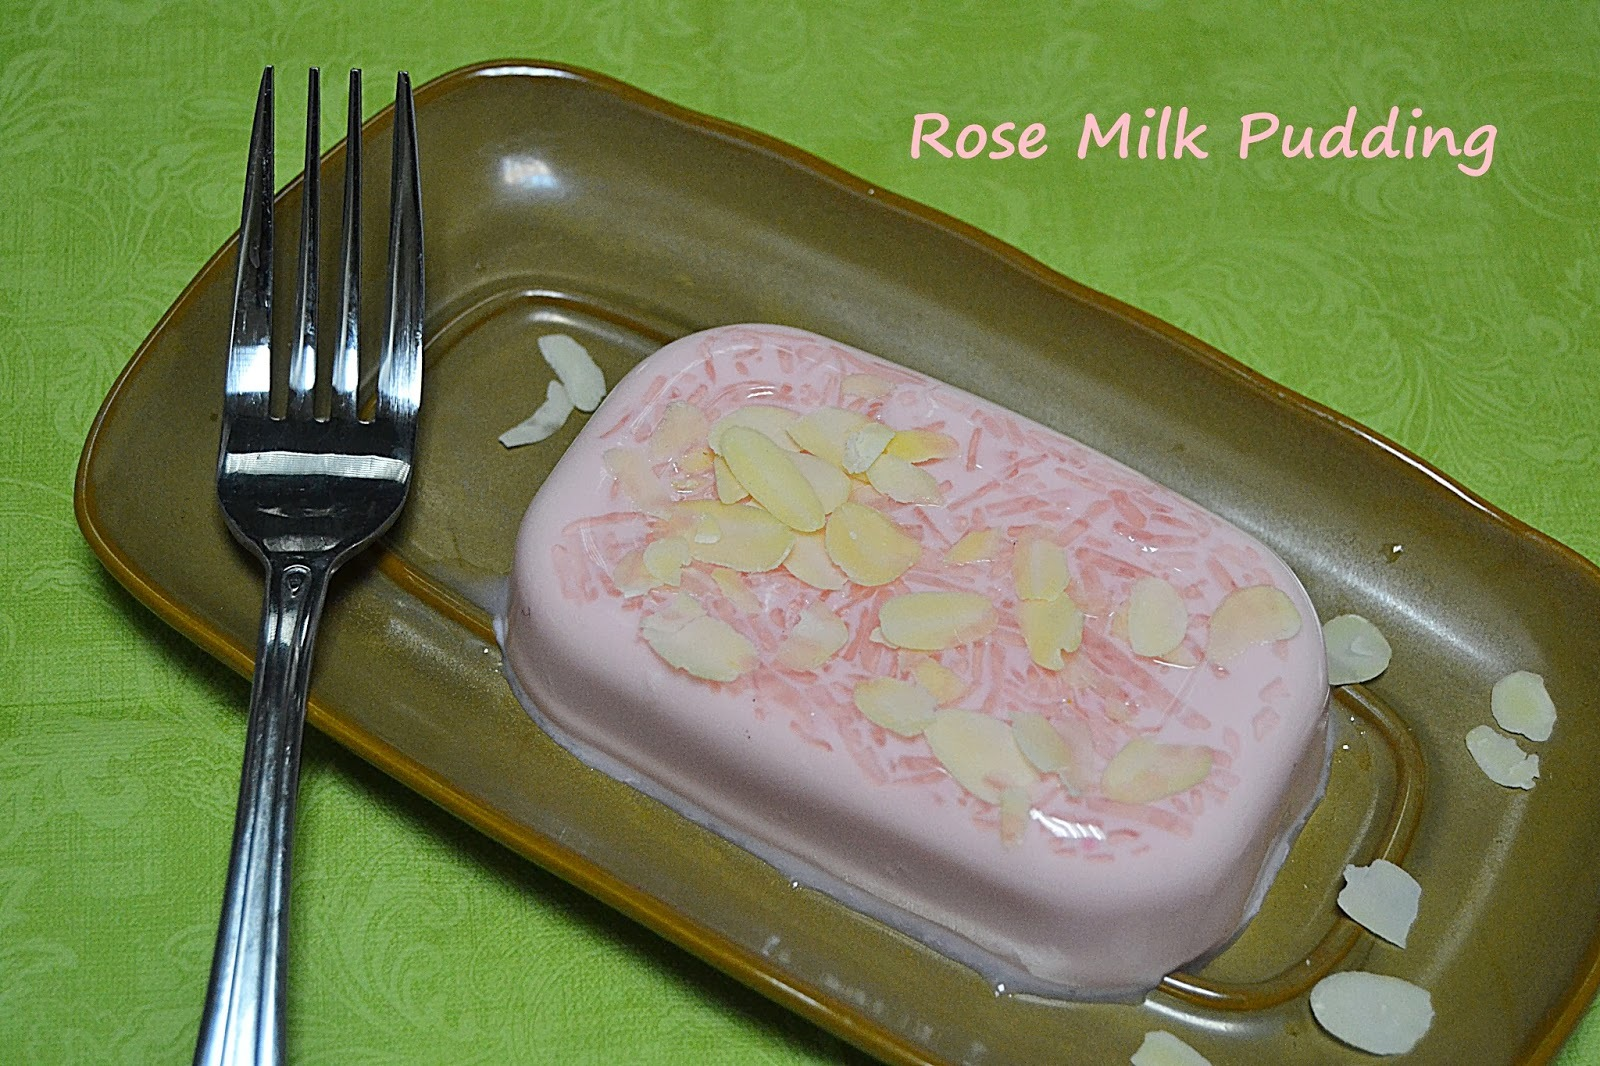 Rose Milk Pudding